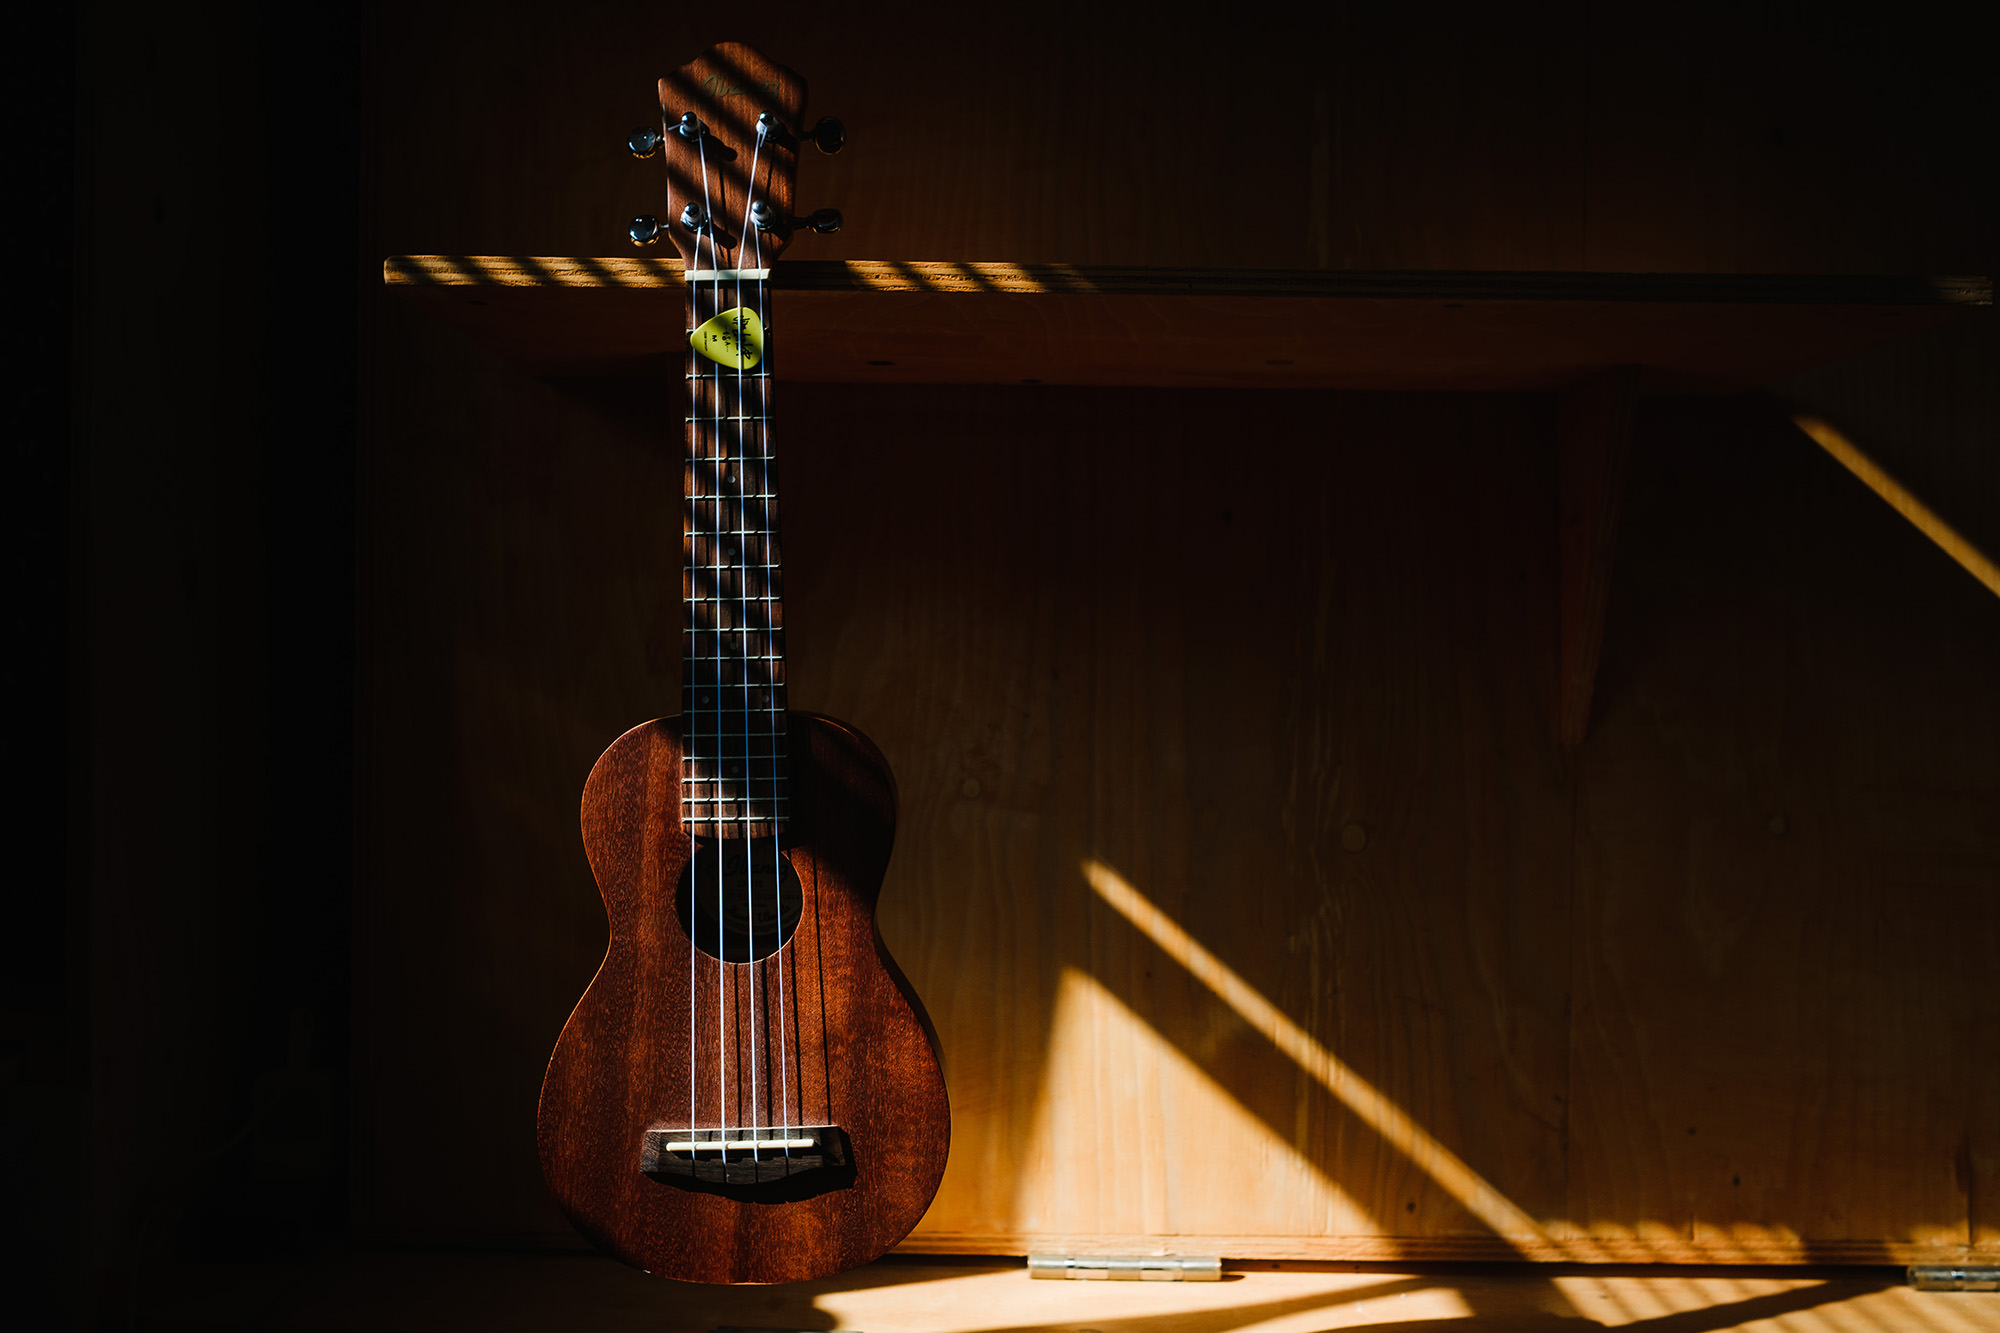 ukulele in the sunshine